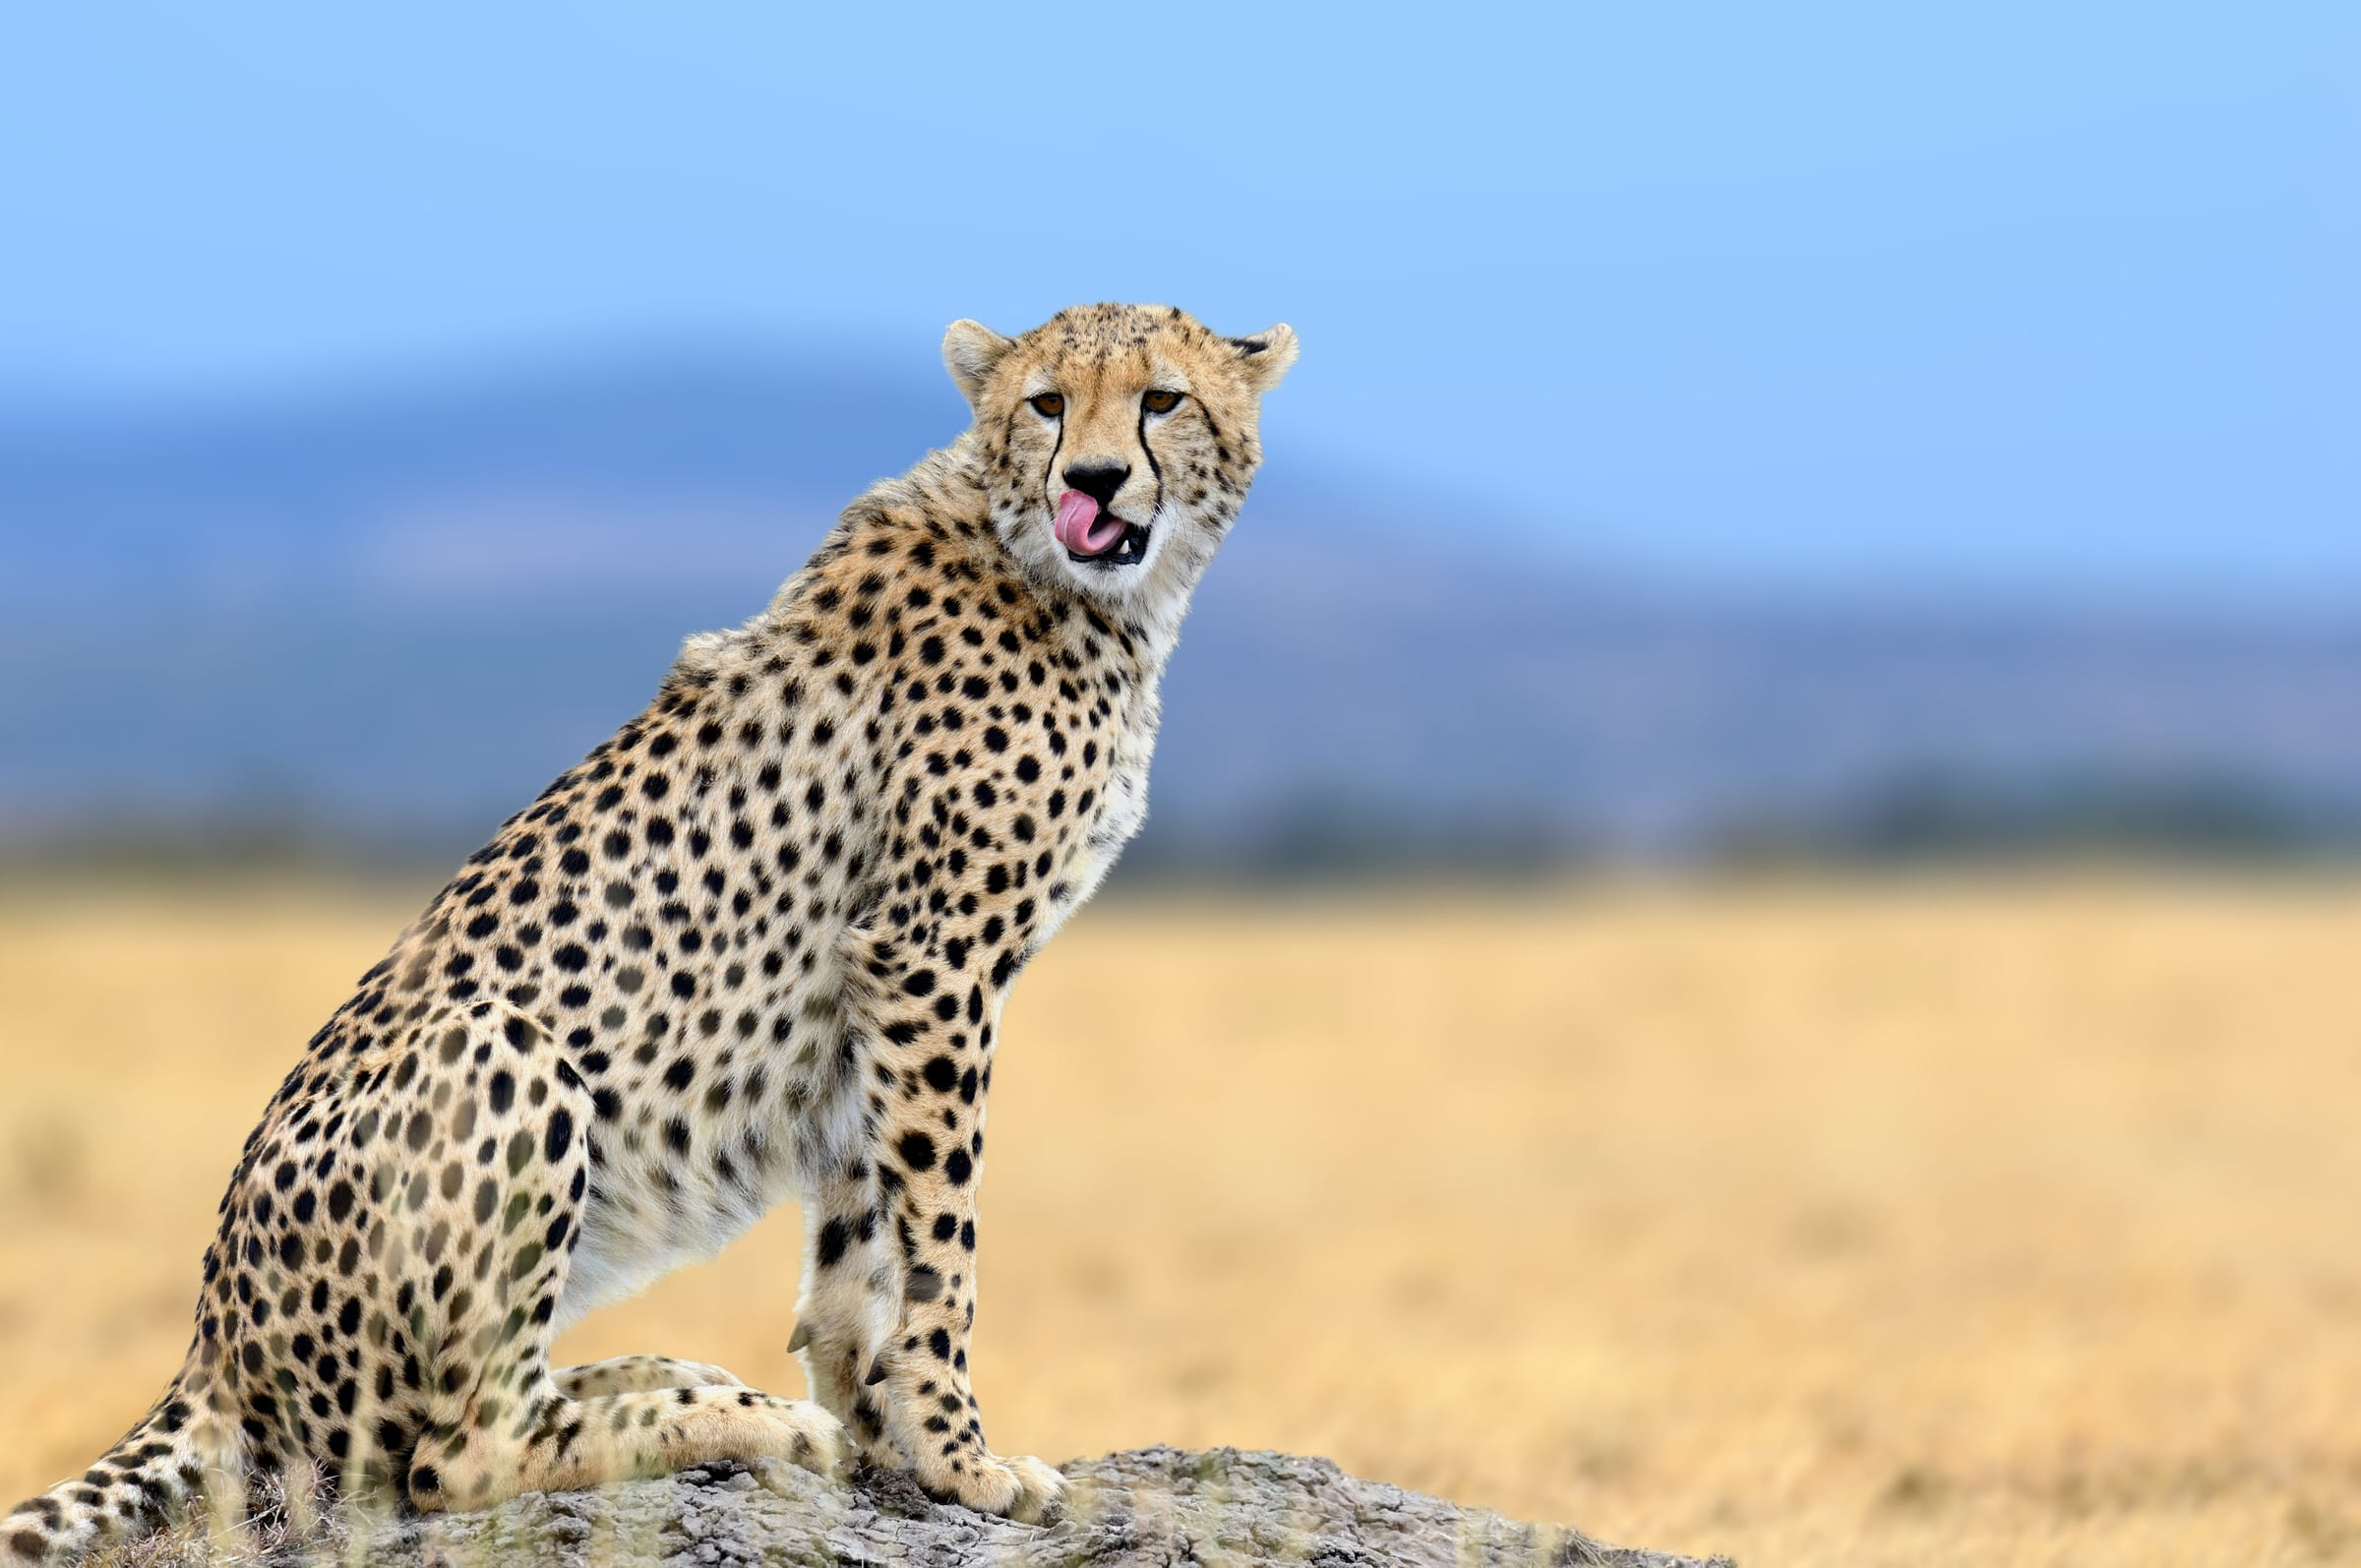 African cheetah, Masai Mara National Park, Kenya, Africa. Cat in nature habitat. Greeting of cats